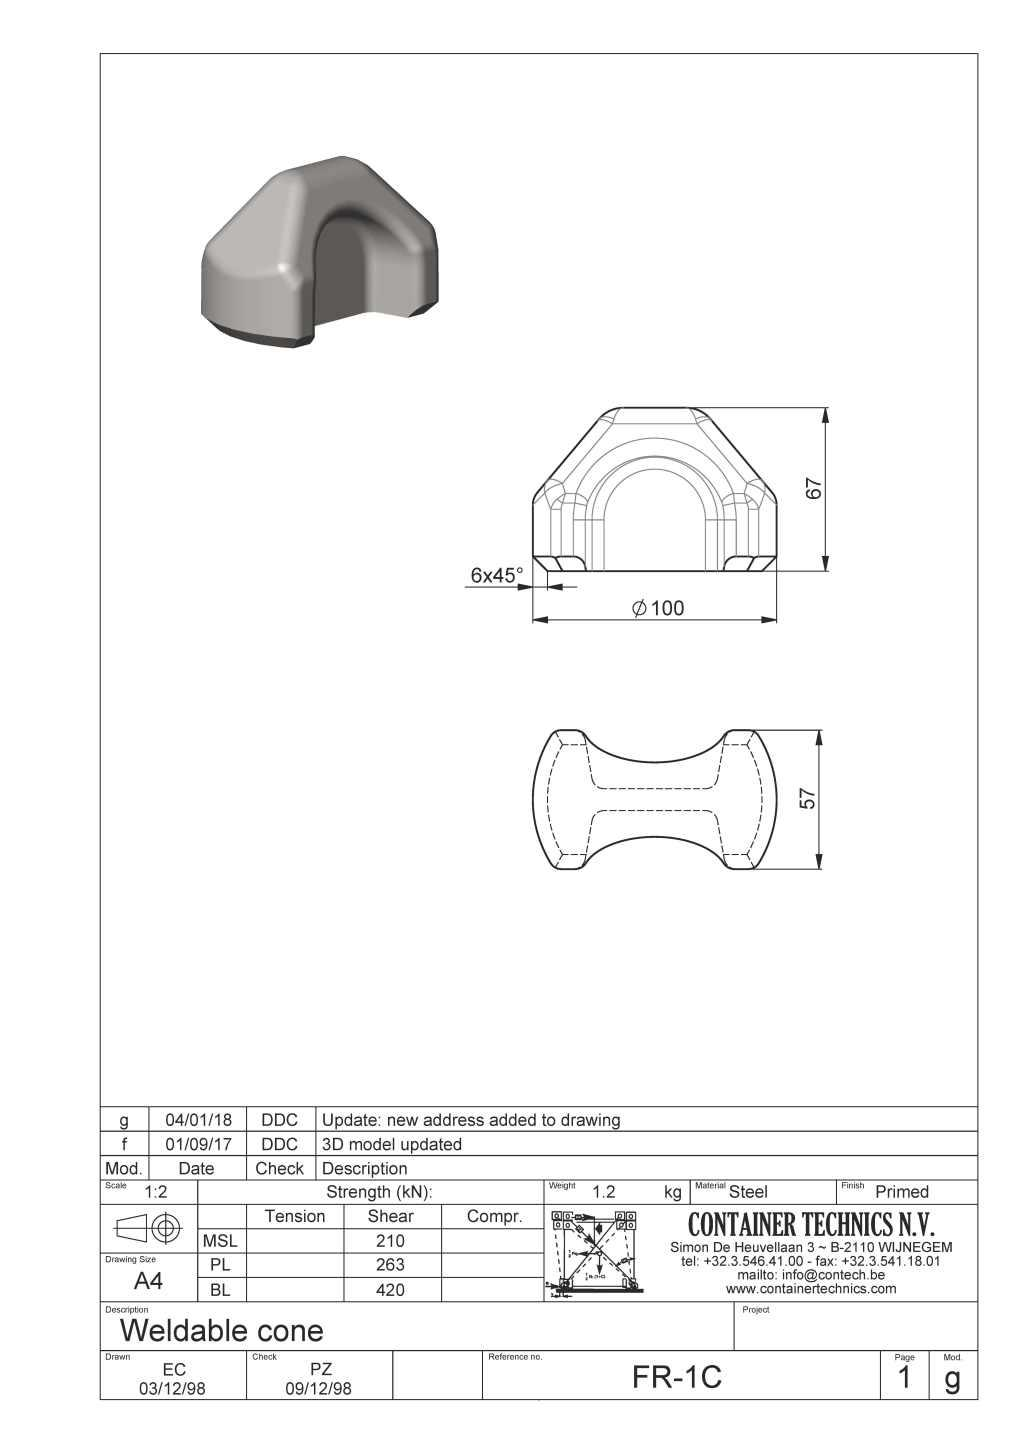 FR-1C Weldable cone